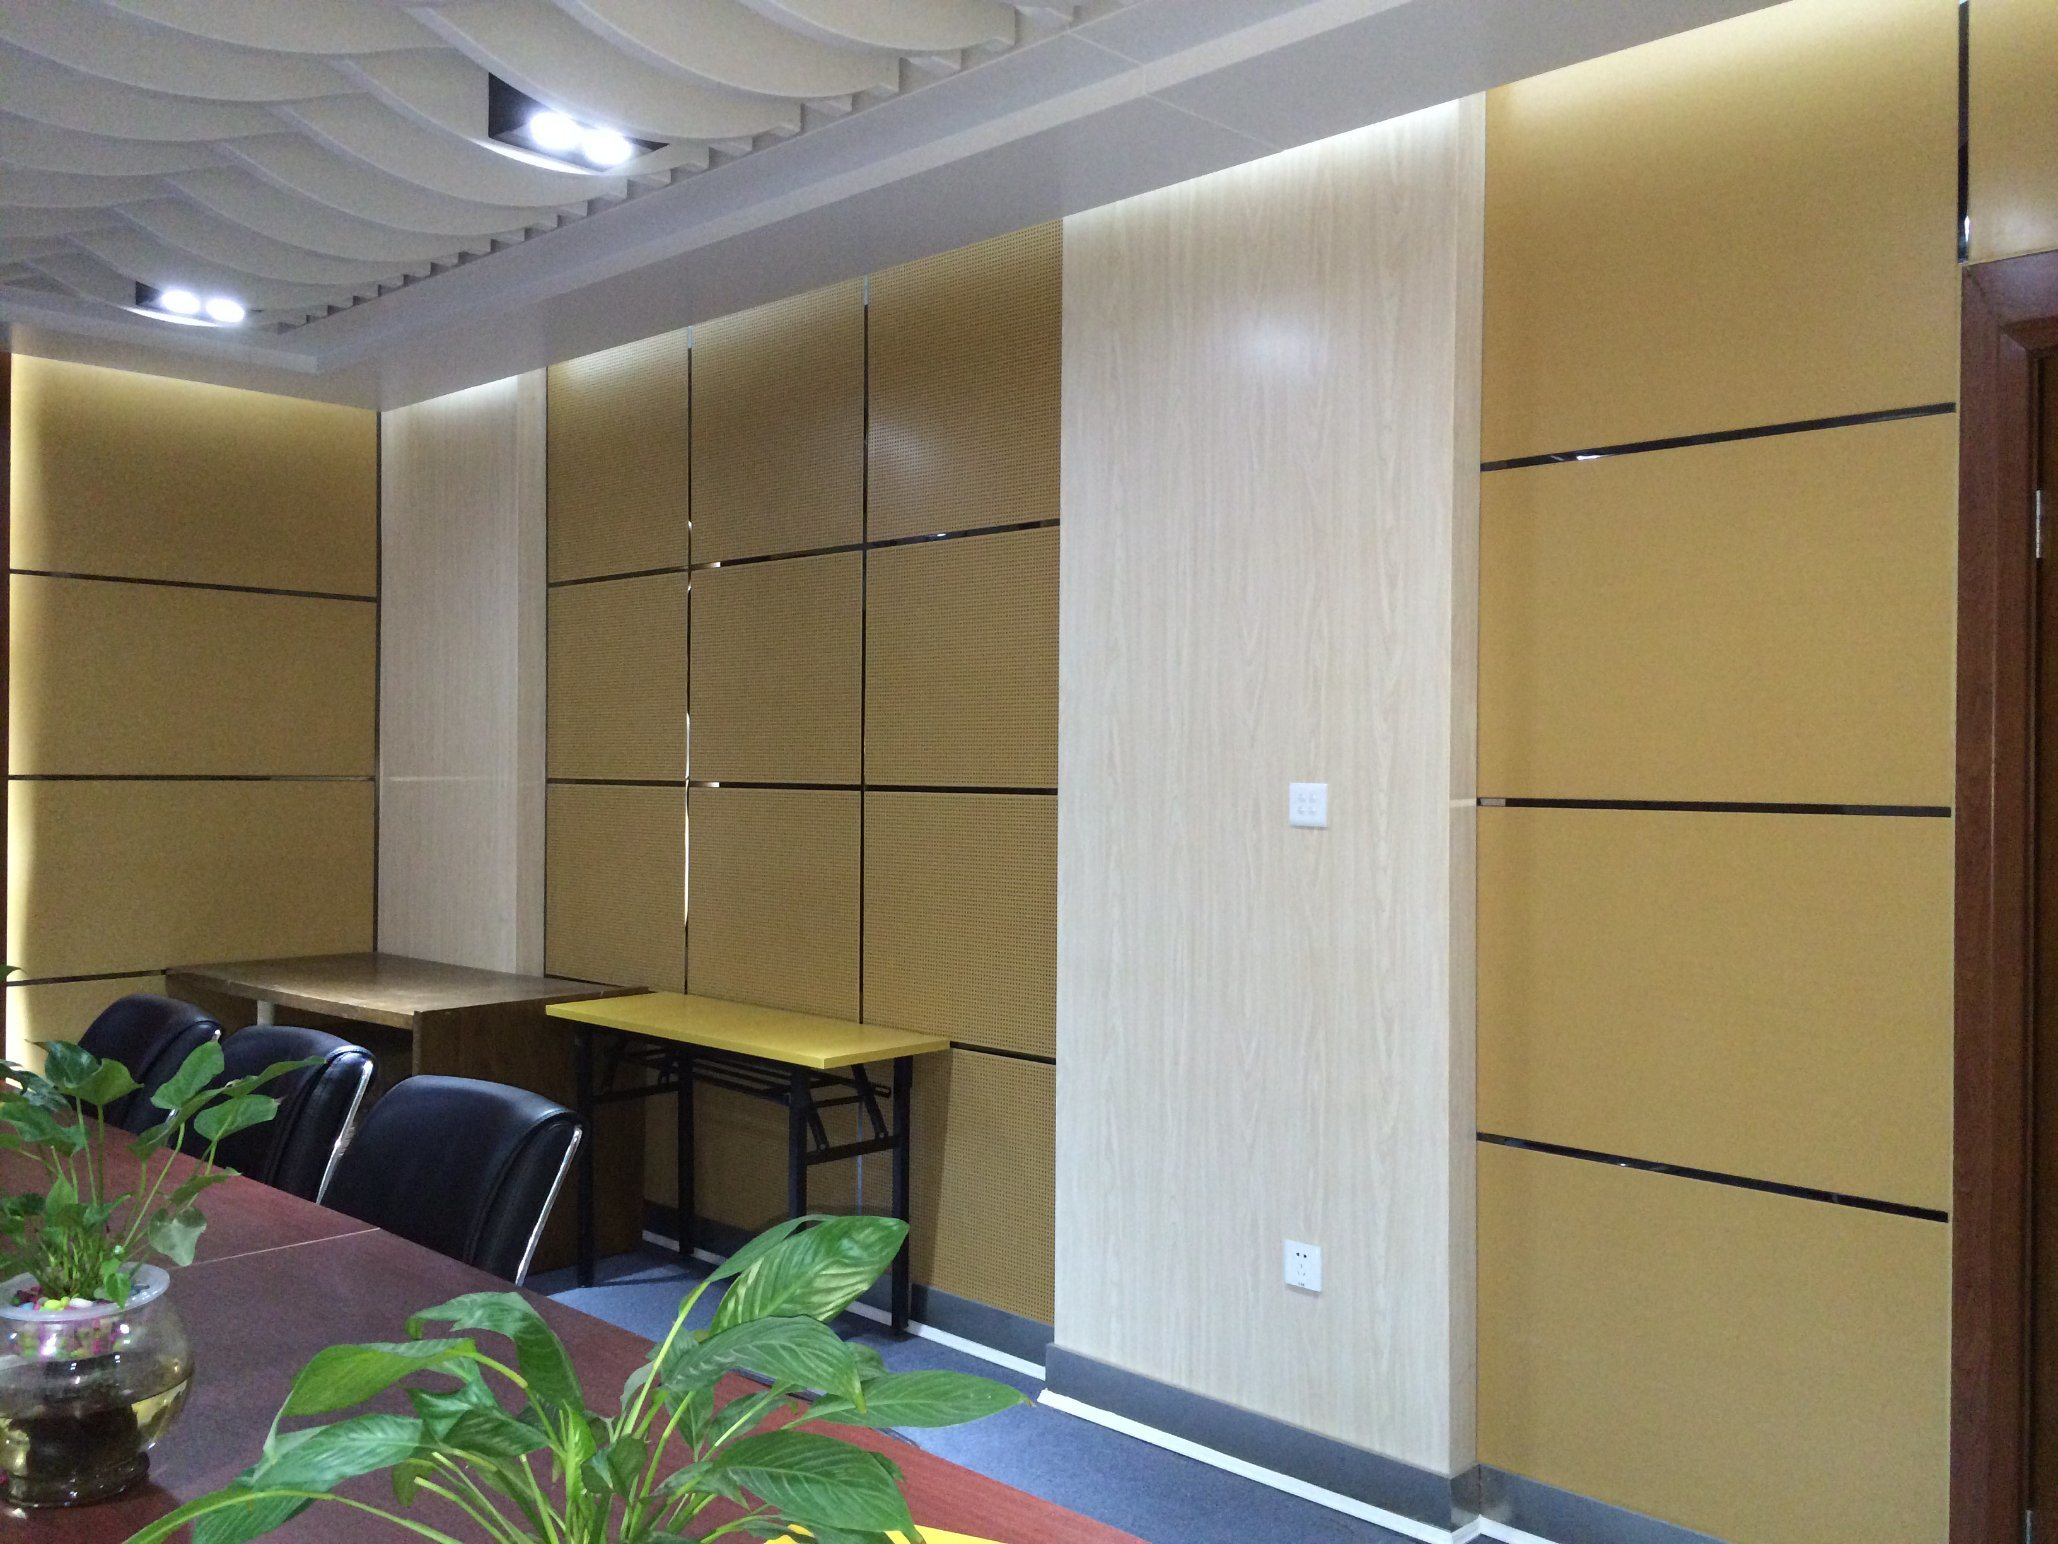 China Punch Aluminum Alloy Ceiling Sound Insulation for Meeting Room ...